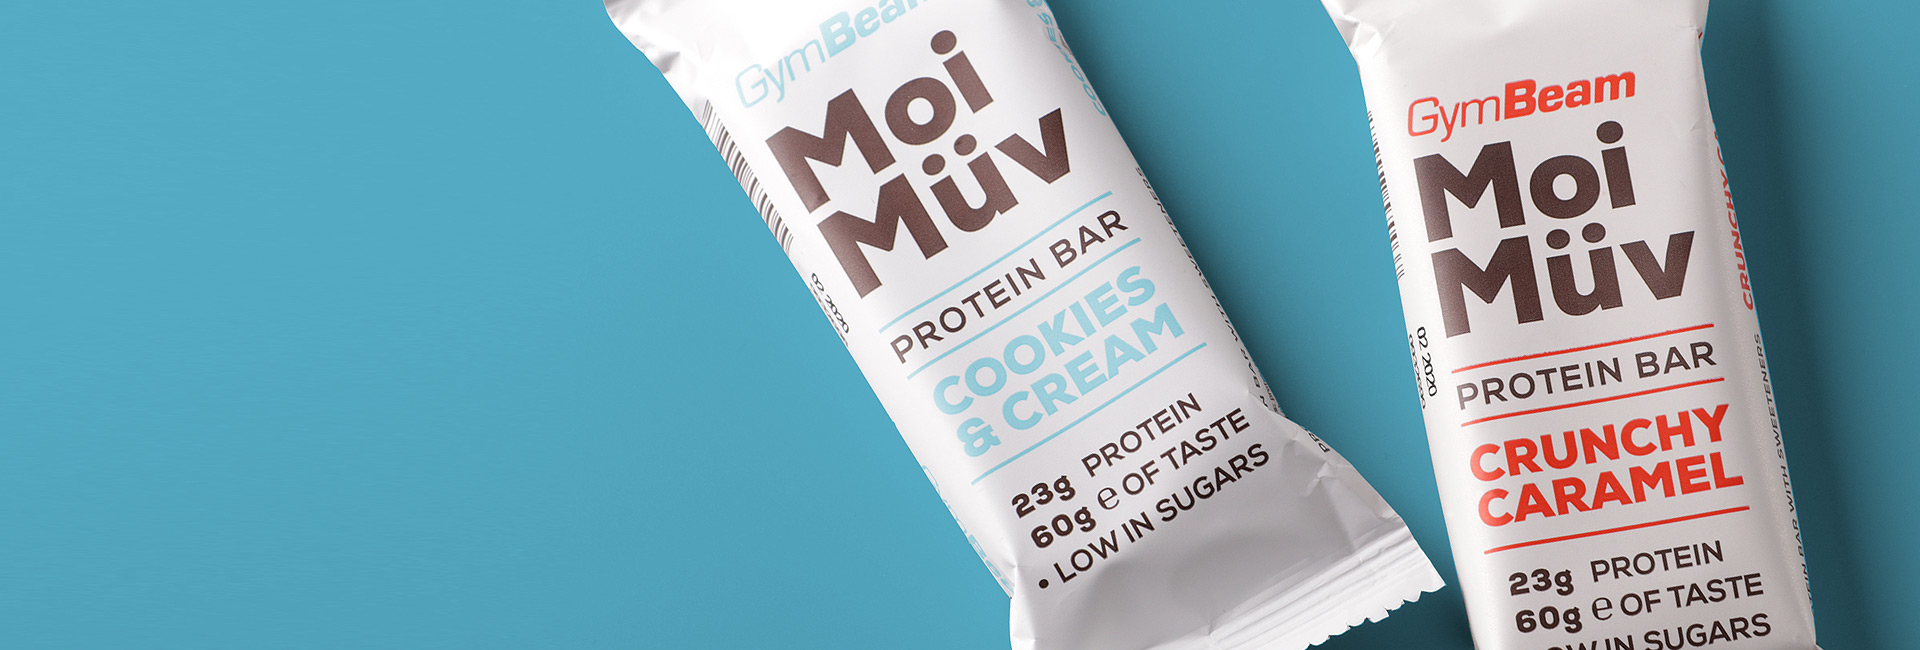 gymbeam moi muv packaging intro